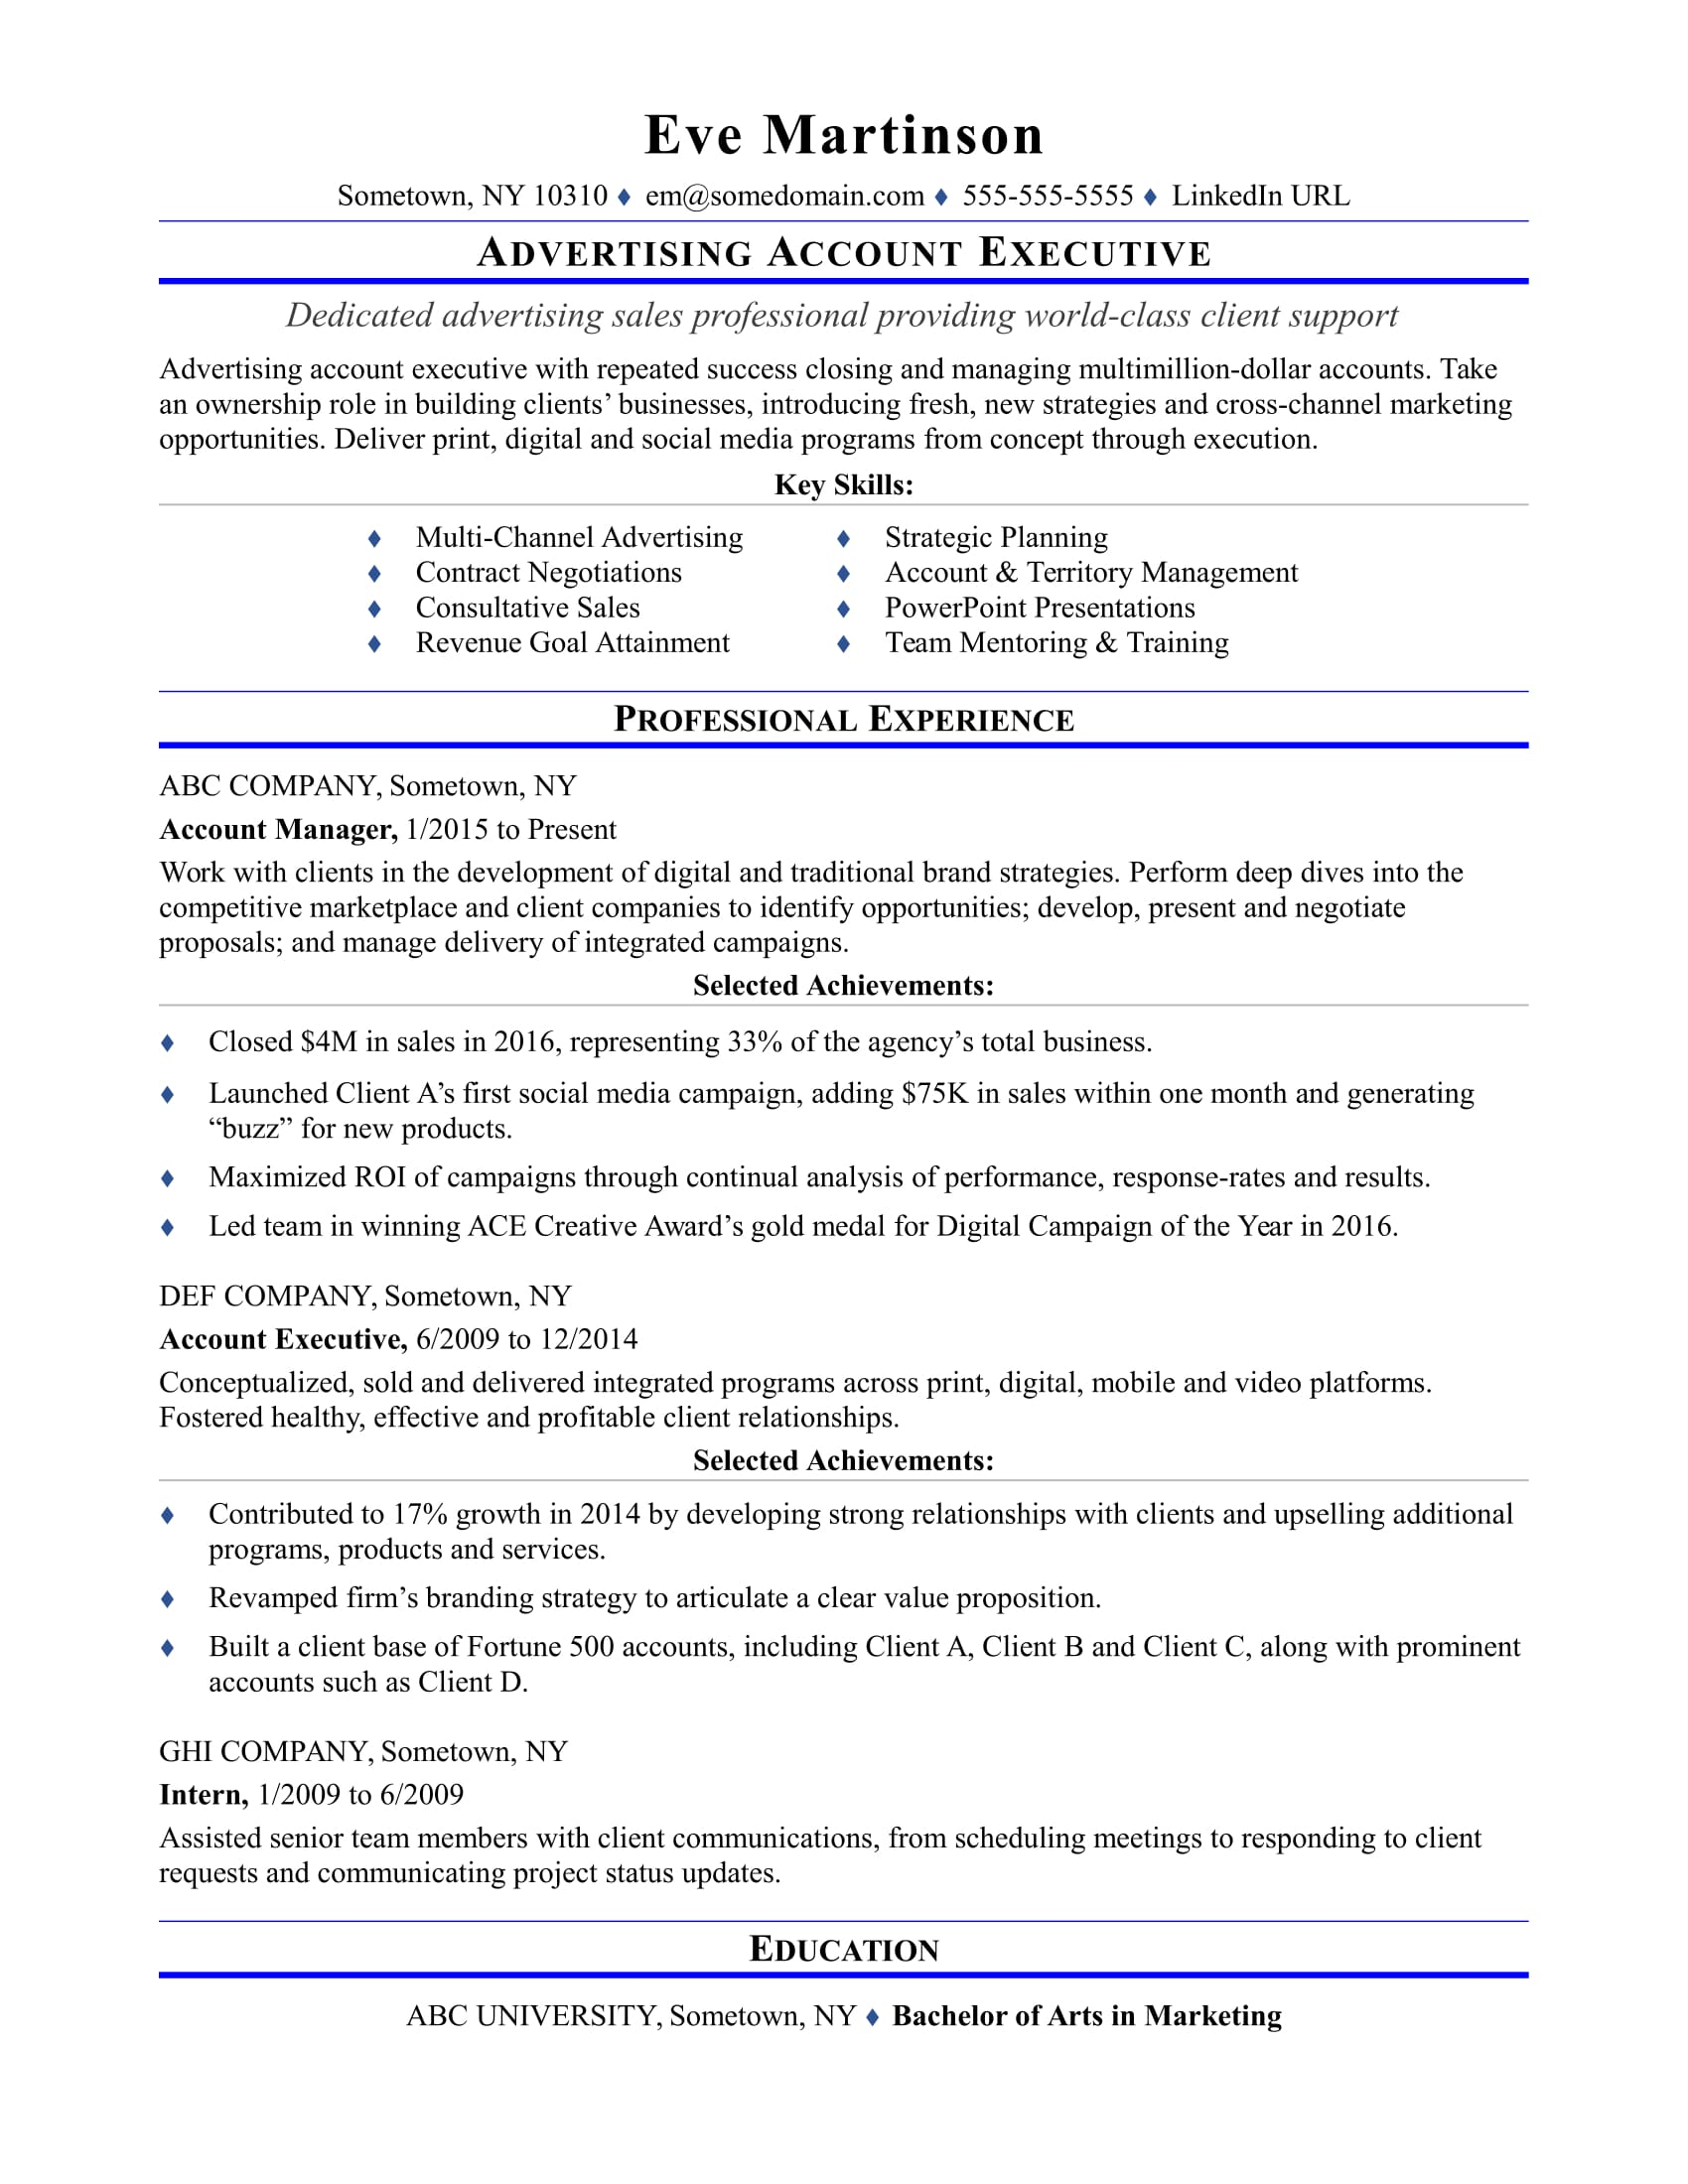 sample resume for an advertising account executive monster senior tips compliance officer Resume Senior Executive Resume Tips